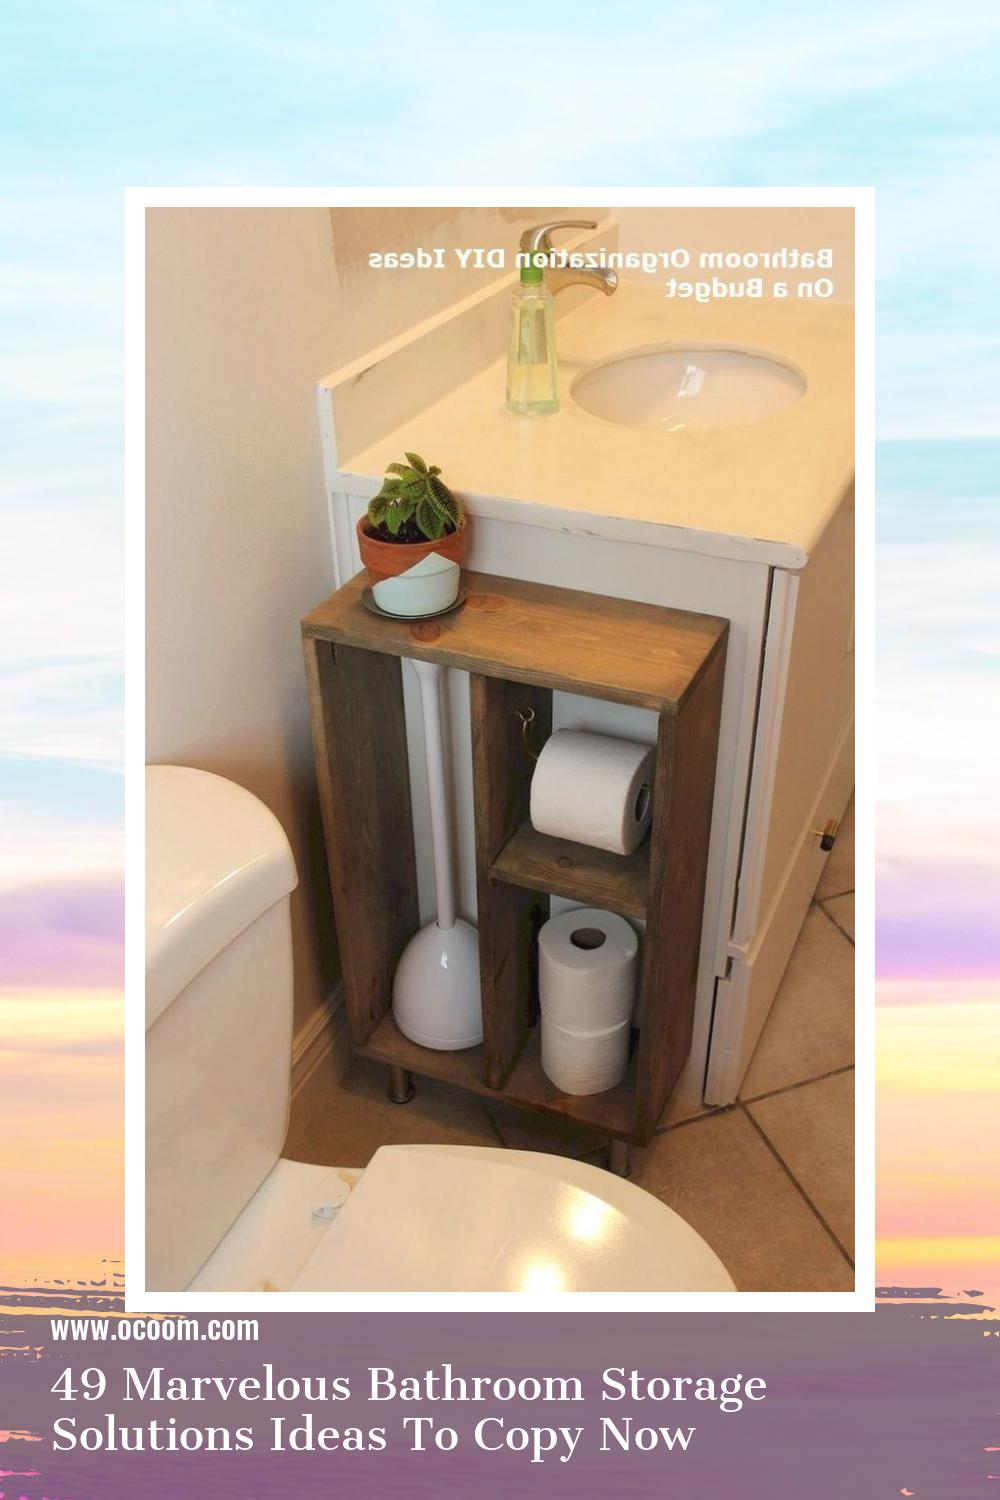 49 Marvelous Bathroom Storage Solutions Ideas To Copy Now 11